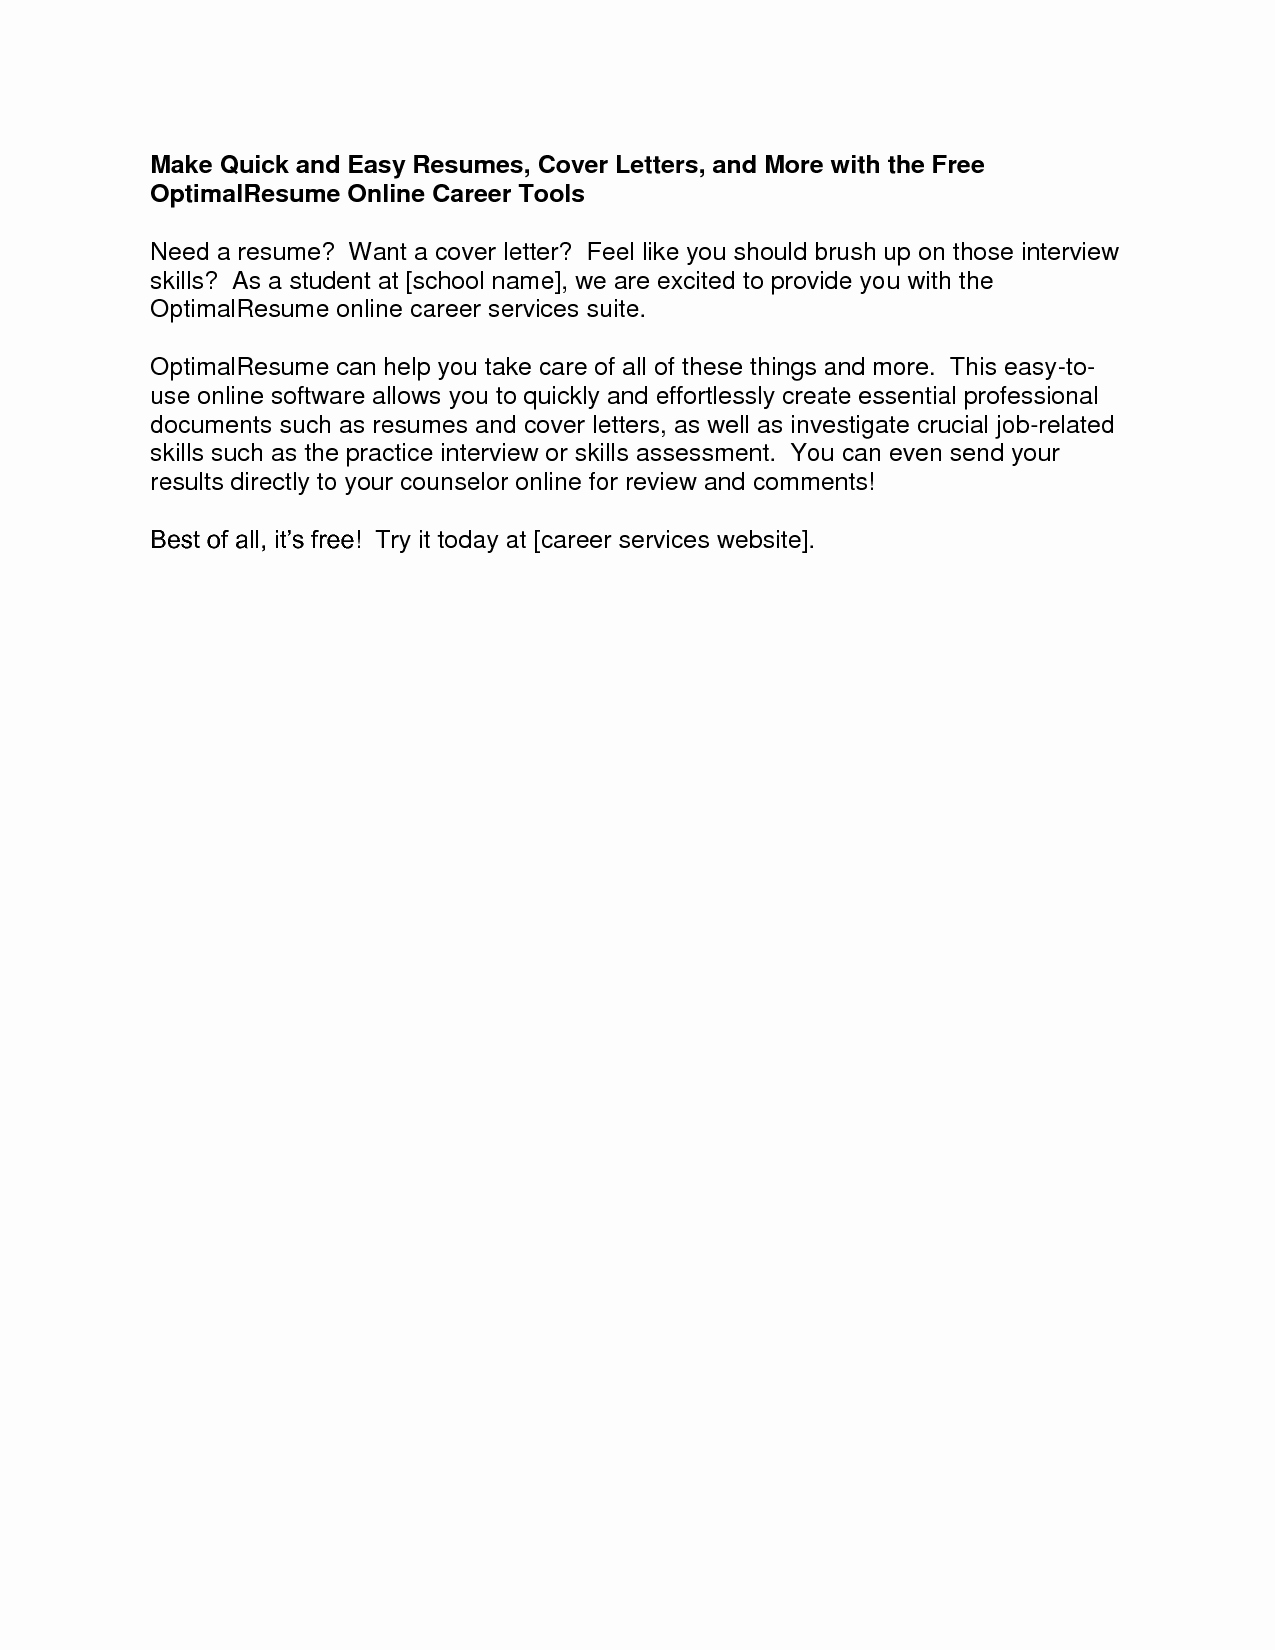 Short and Simple Cover Letters Lovely 10 Best Of Short Simple Cover Letter Samples